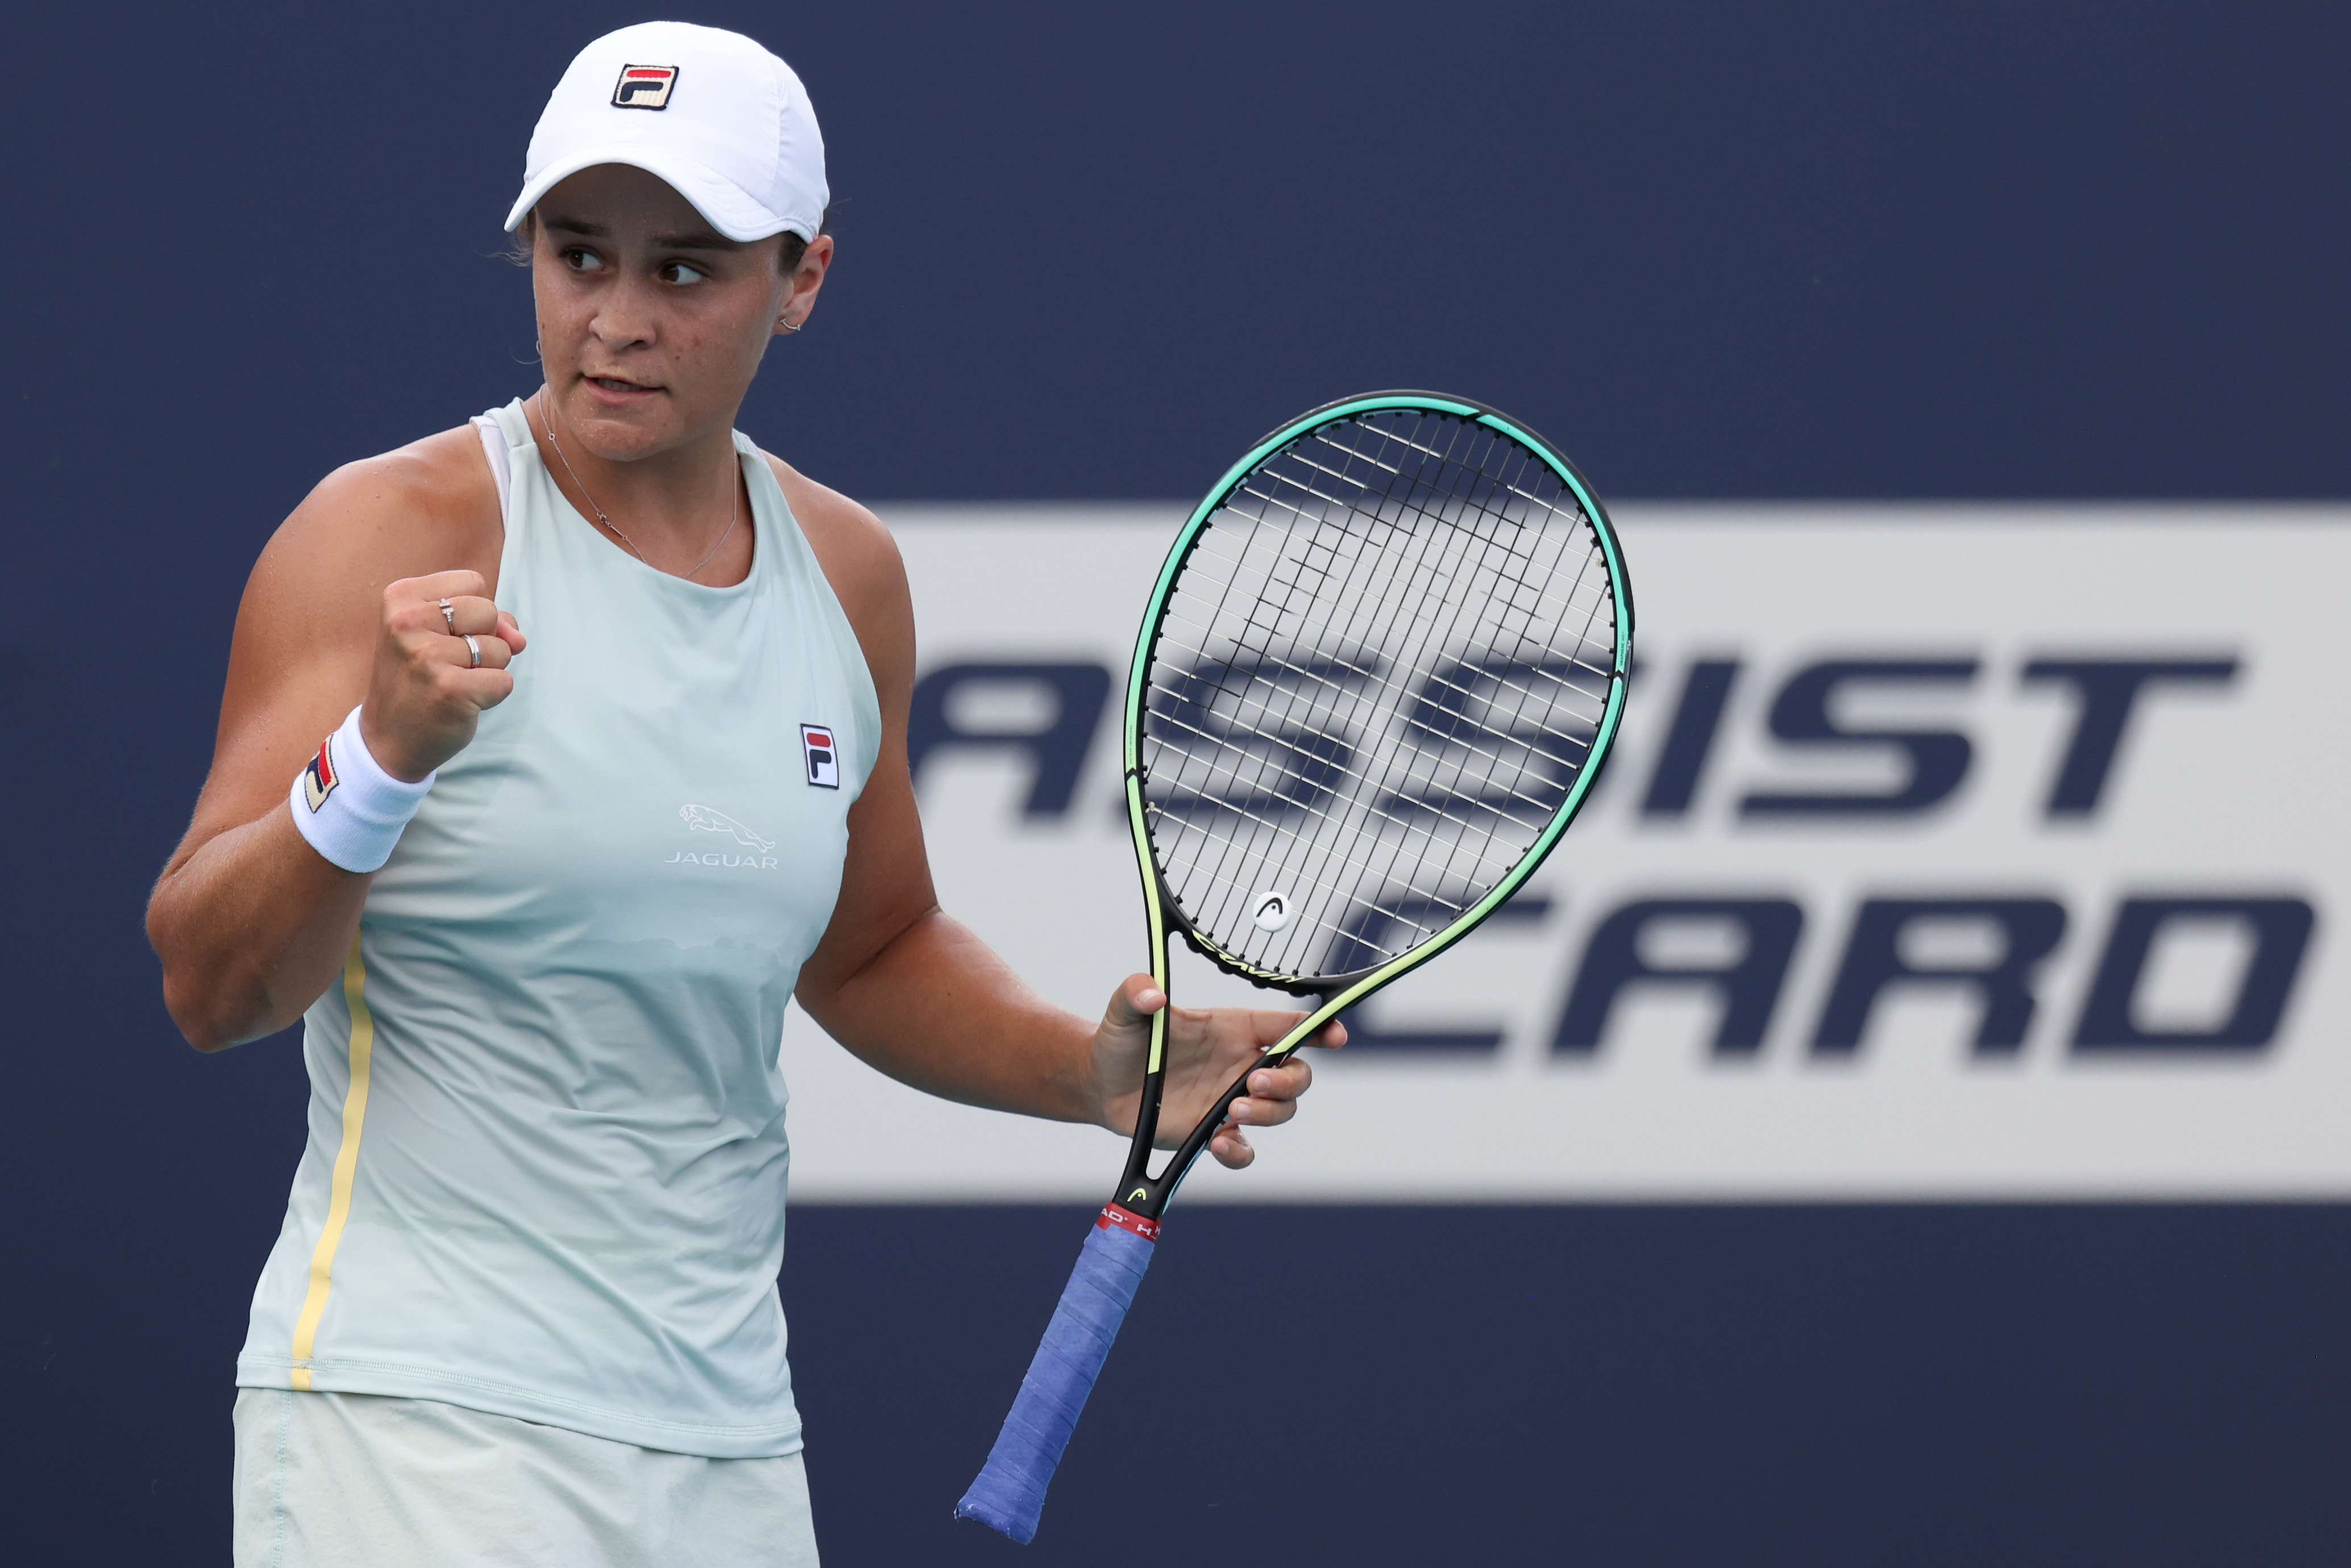 Mar 29, 2021; Miami, Florida, USA; Ashleigh Barty of Australia reacts after winning the first set against Victoria Azarenka of Belarus (not pictured) in the fourth round in the Miami Open at Hard Rock Stadium. Mandatory Credit: Geoff Burke-USA TODAY Sports